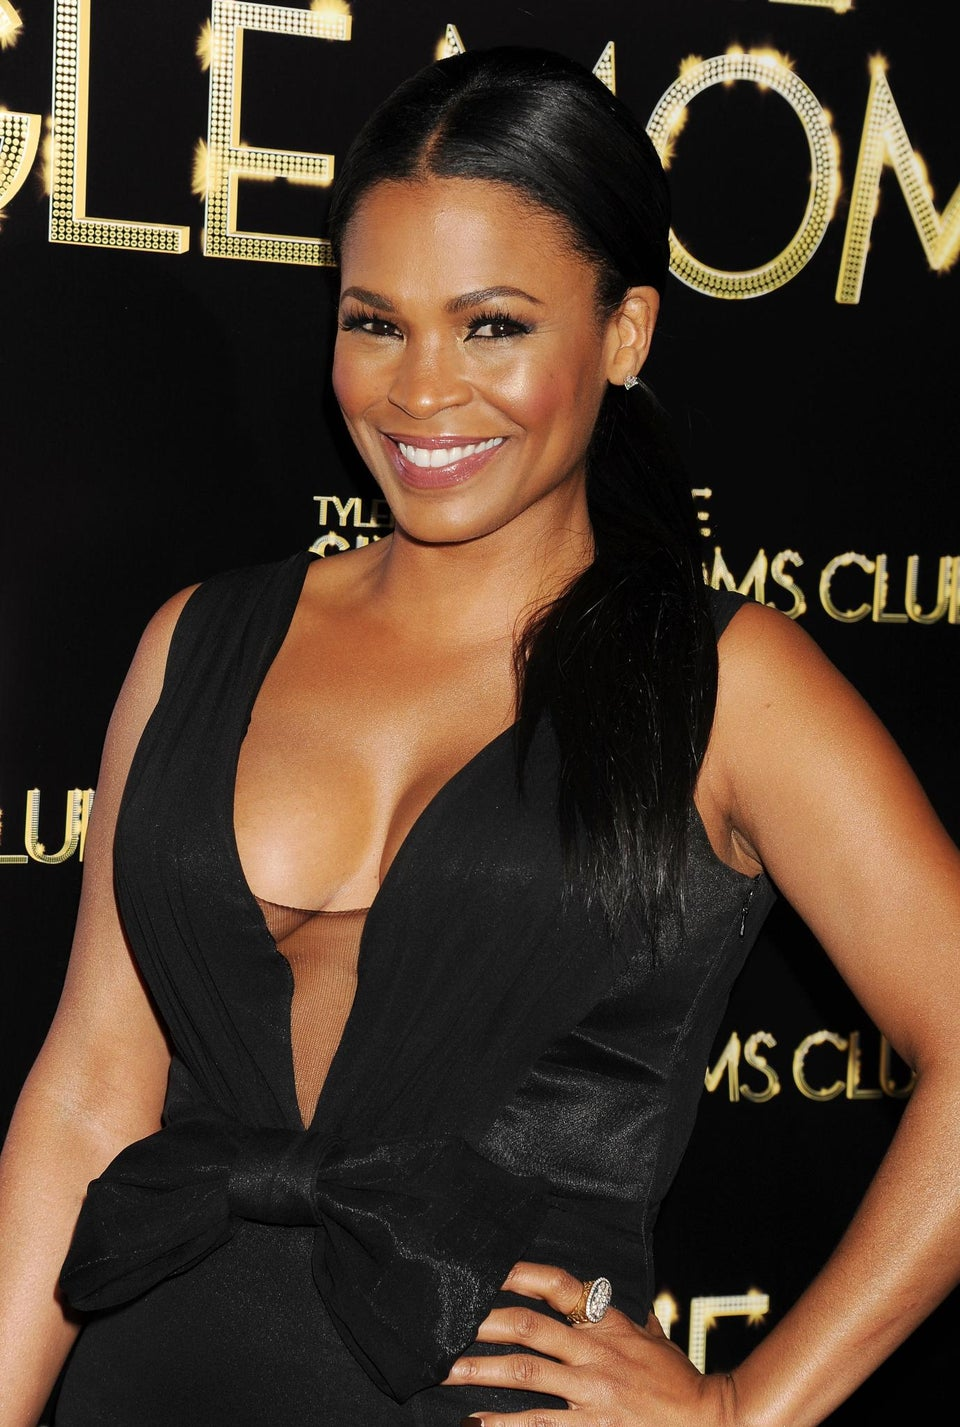 Nia Long Responds to J.Cole's 'No Role Modelz' Lyrics: 'He's Really Not Too Young'